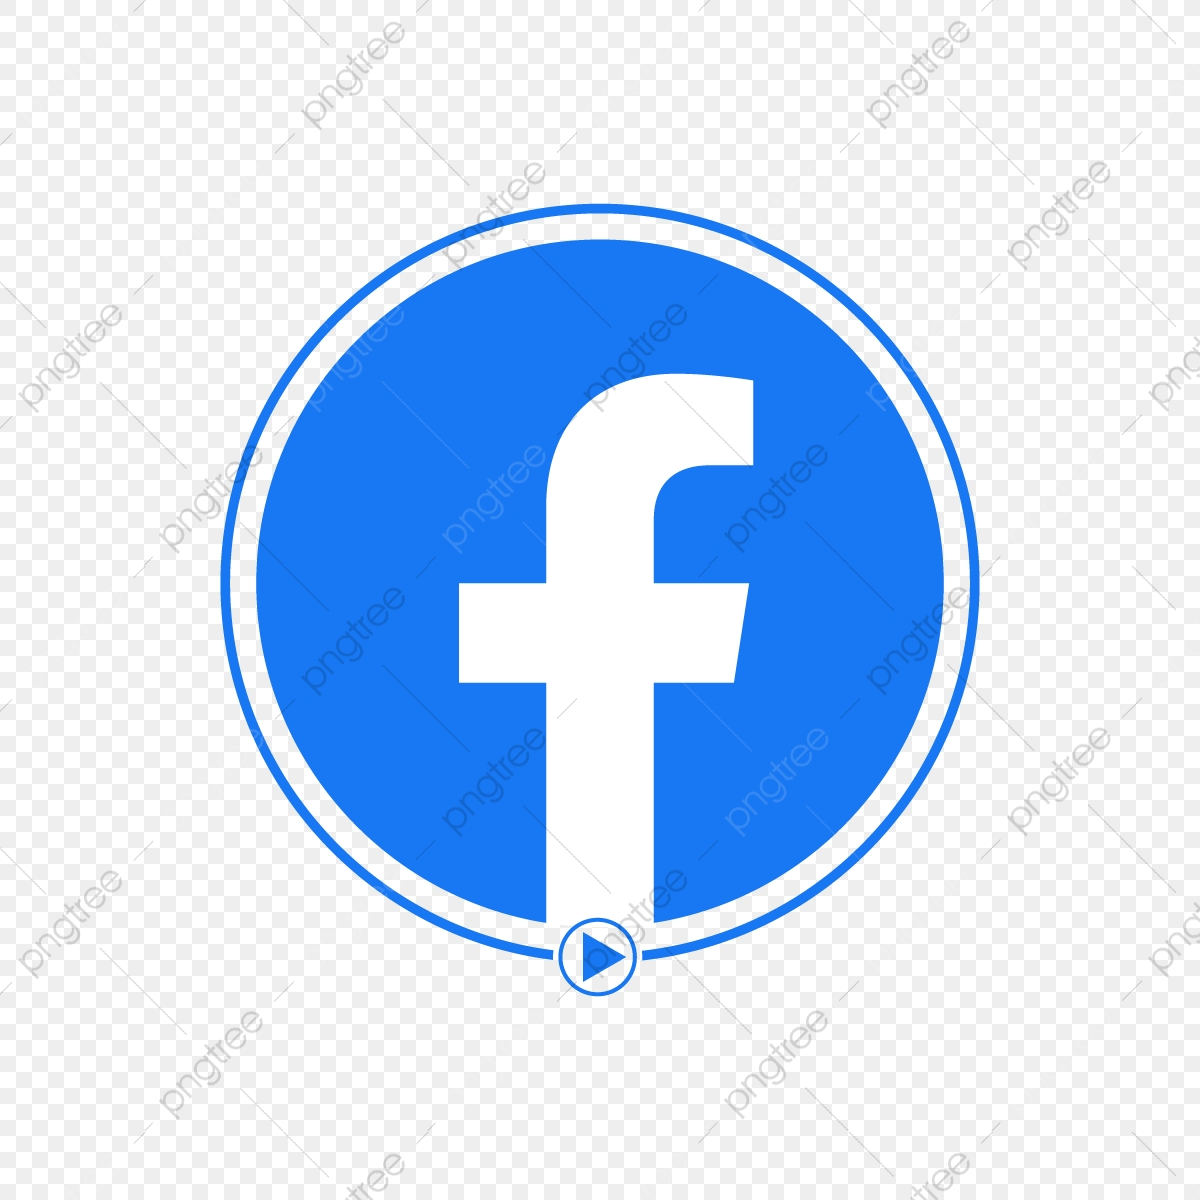 Facebook Icon Vector Free Download Facebook Facebook Logo Facebook Icon Png And Vector With Transparent Background For Free Download